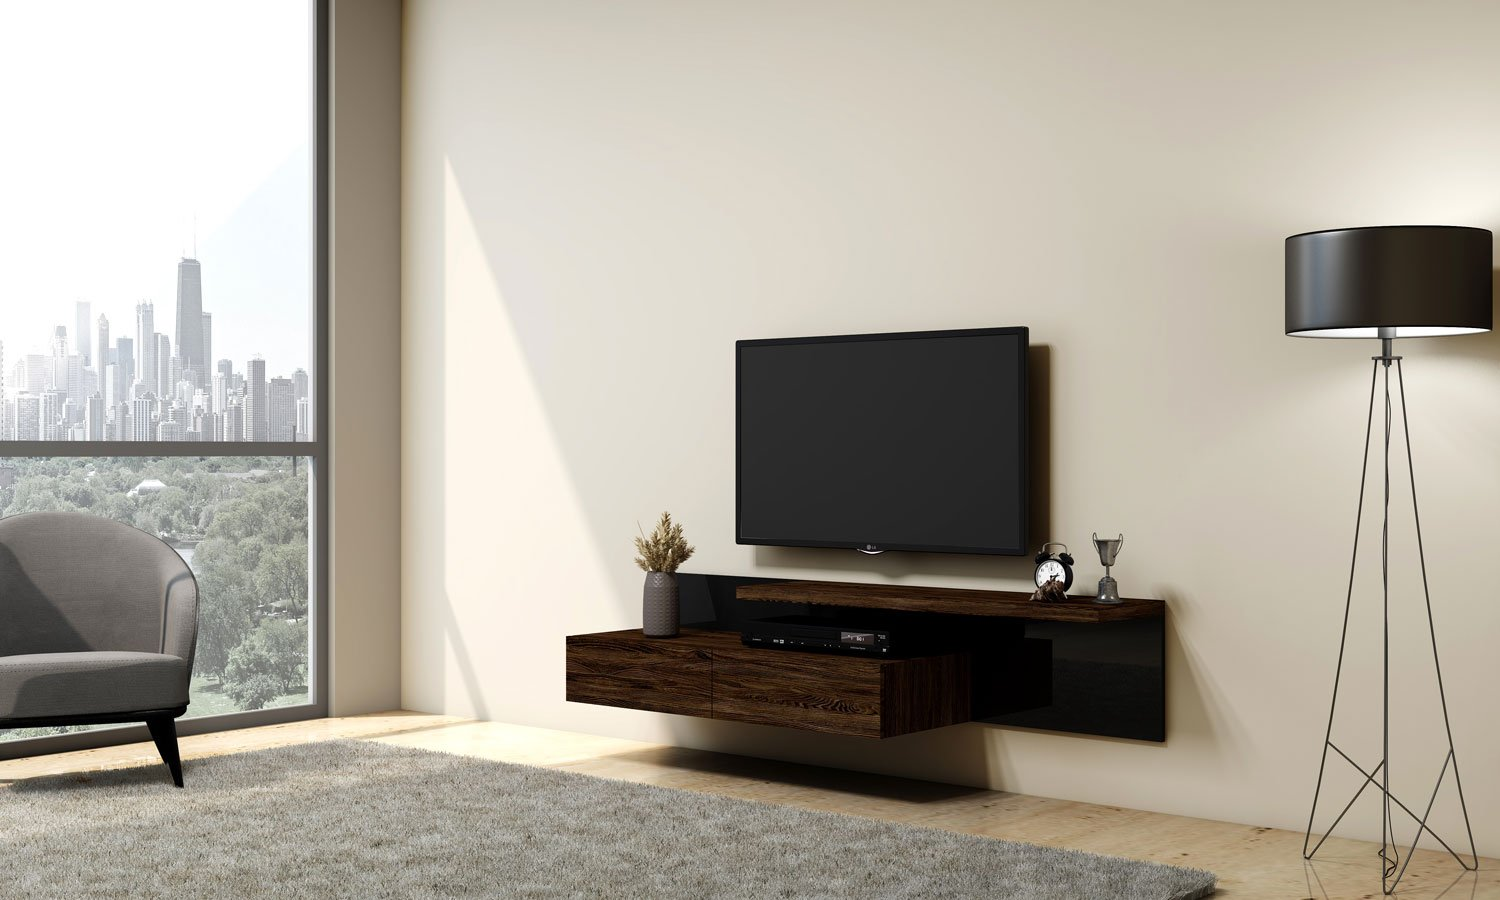 Shadow Black TV unit with Storage in Drawers, Shelf in Bronze Expressive Oak finish & Back Panel